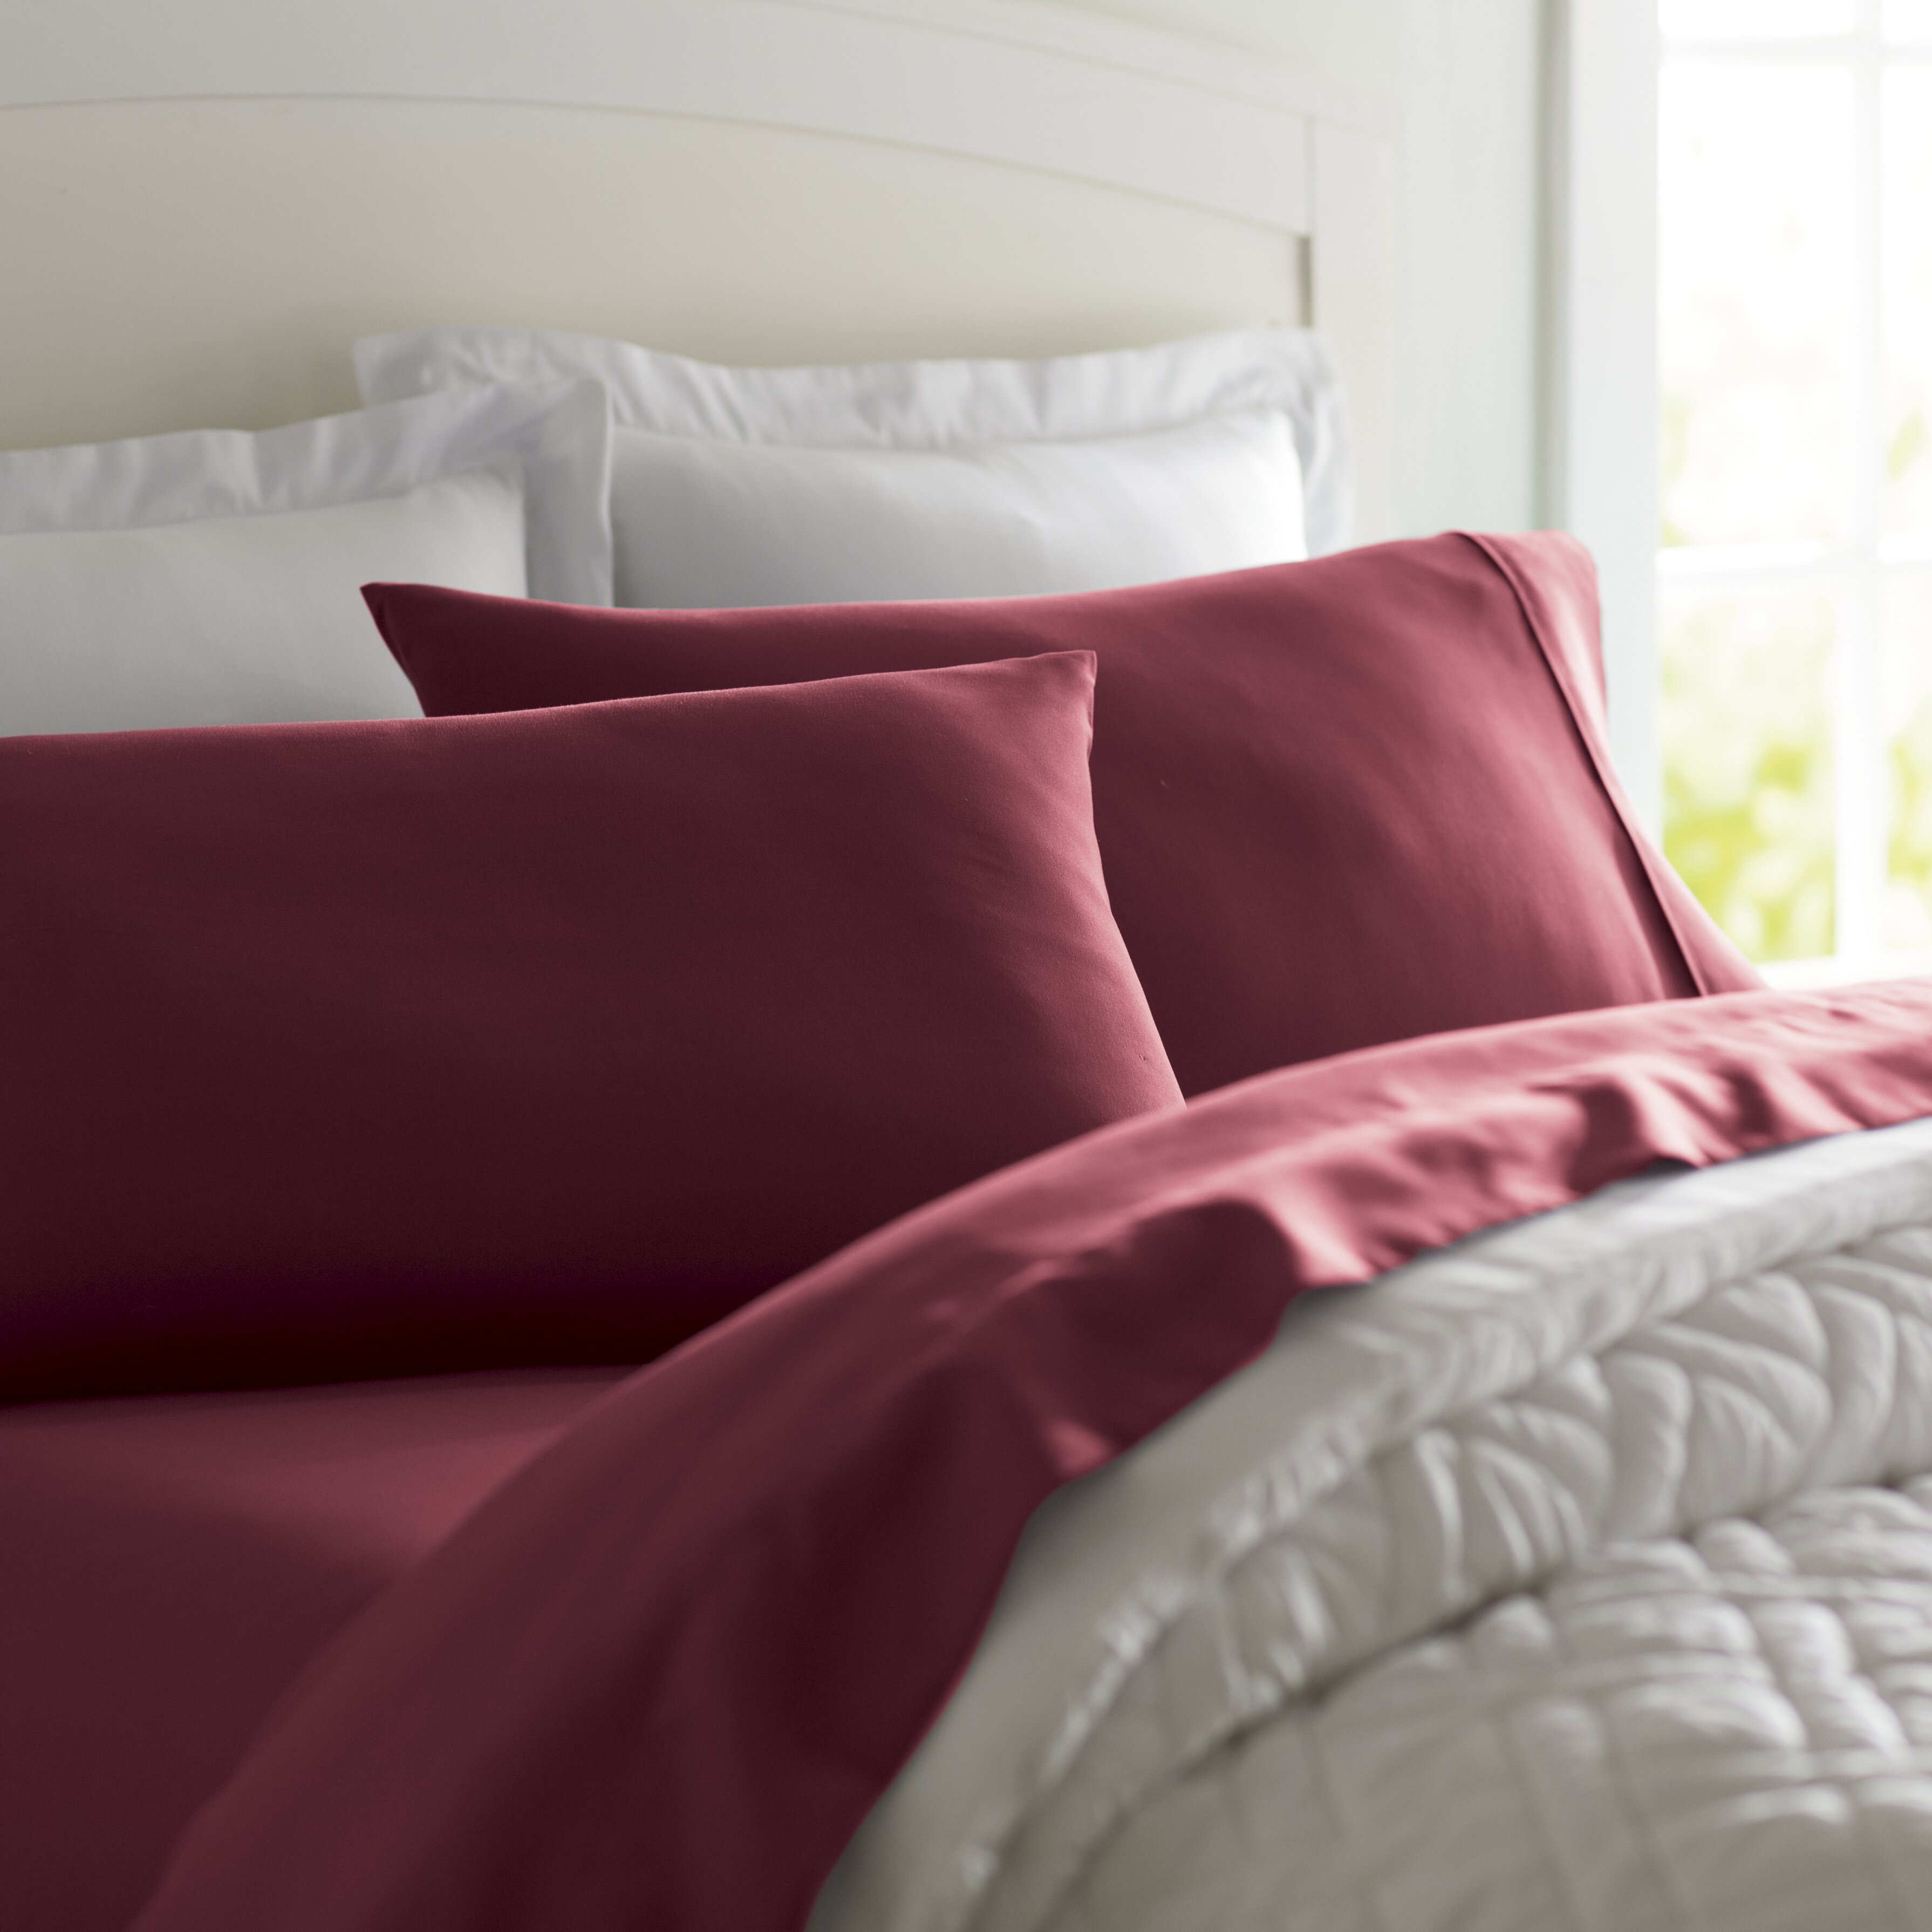 King Sheets Pillowcases You Ll Love In 2020 Wayfair